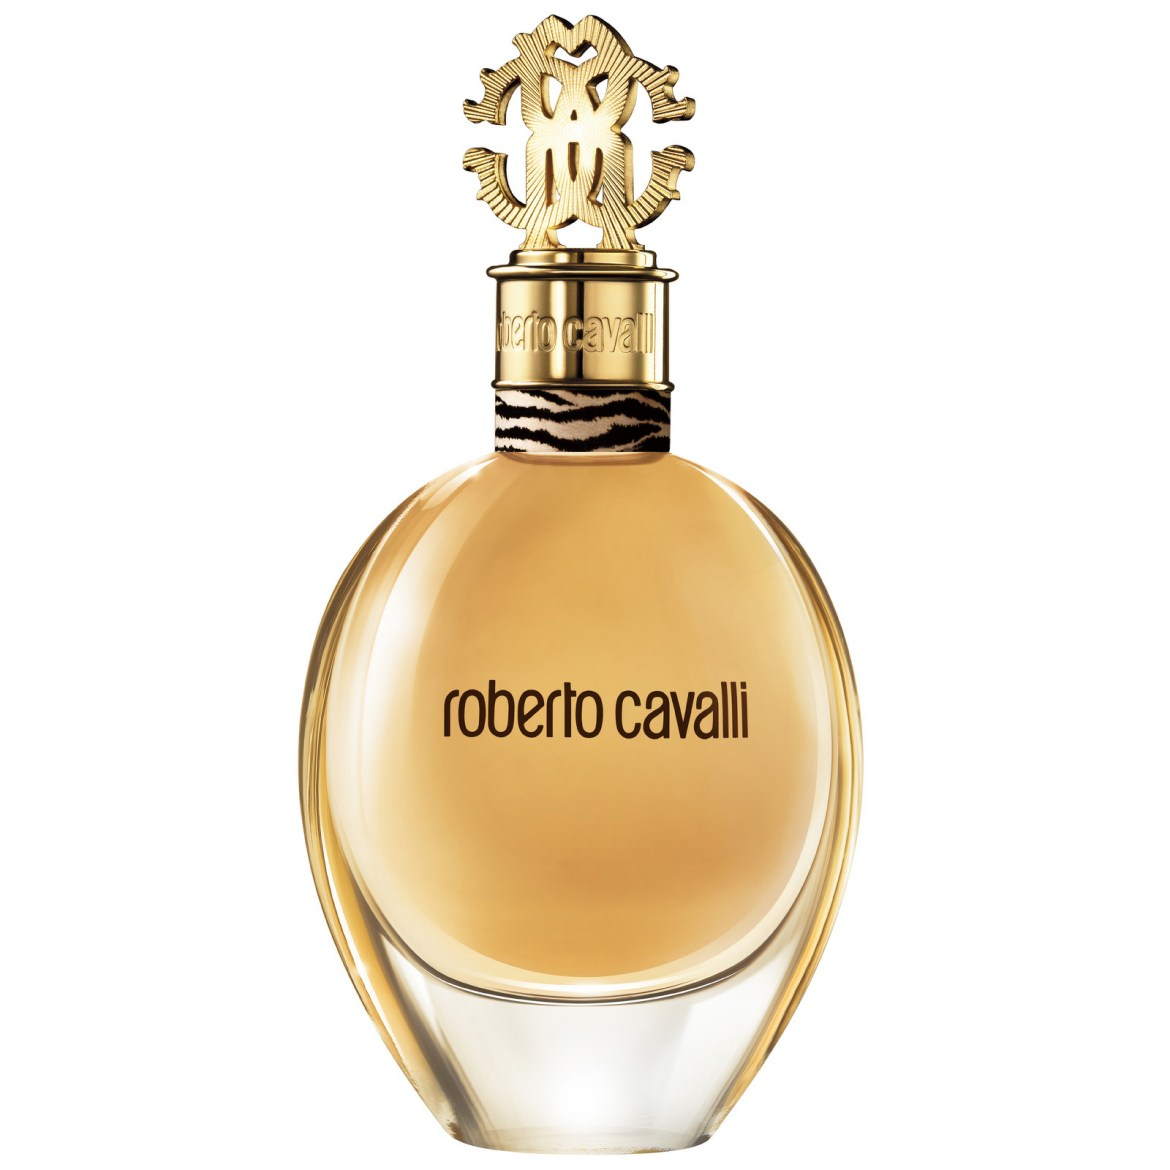 This Roberto Cavalli fragrance is better than half price at The Perfume Shop